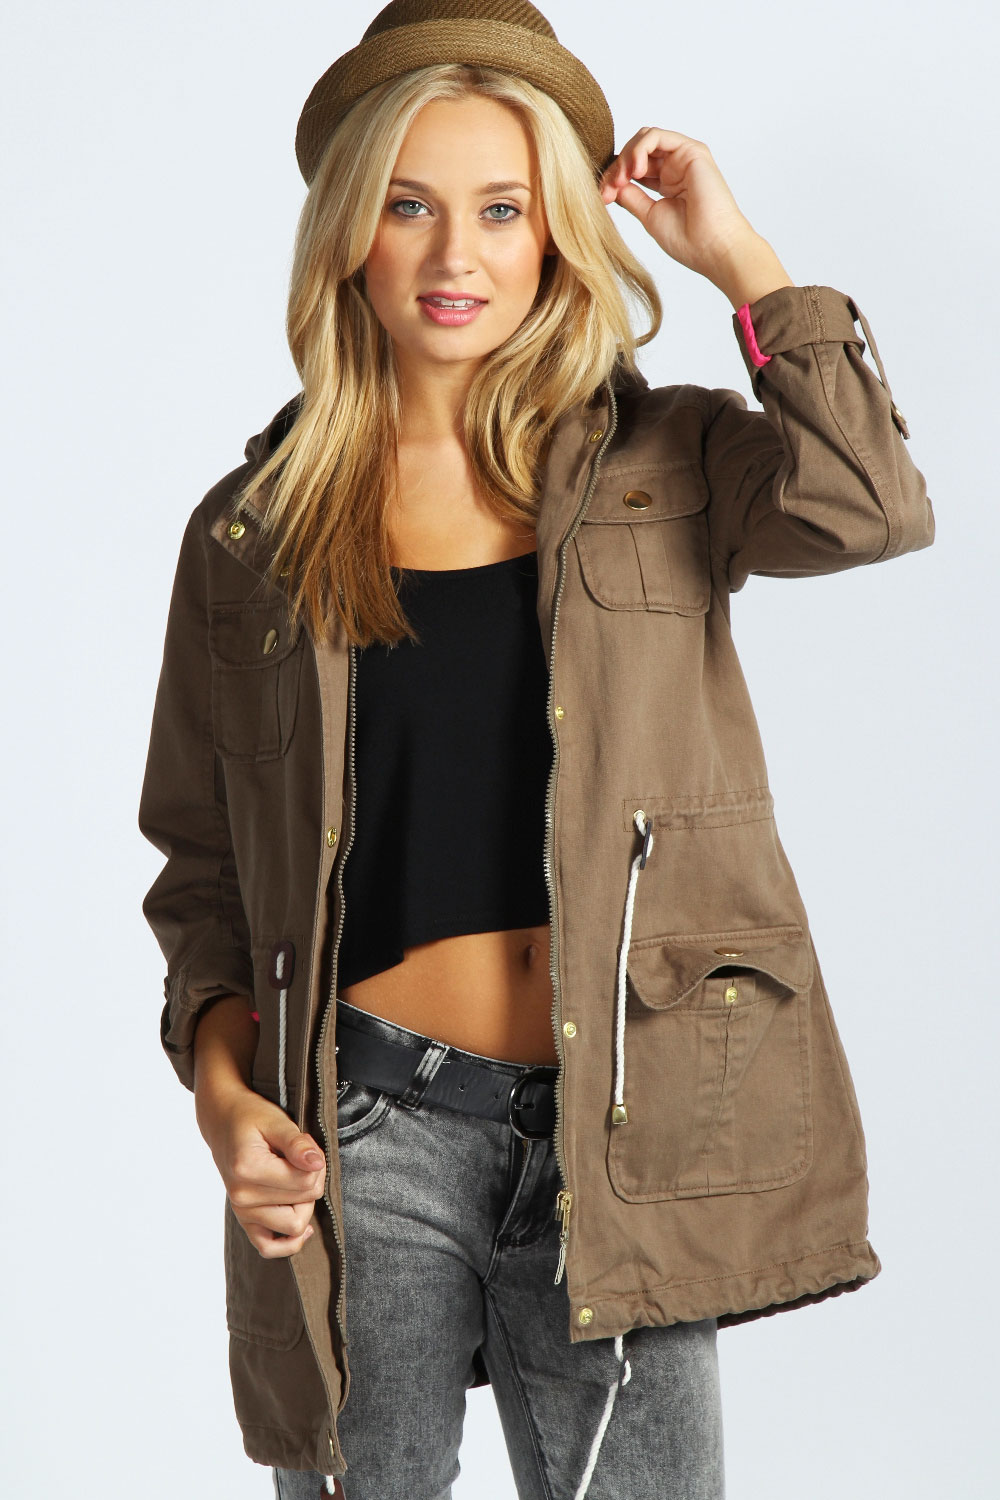 Cheap online clothing stores » Womens brown parka coats e0efa1a0e8